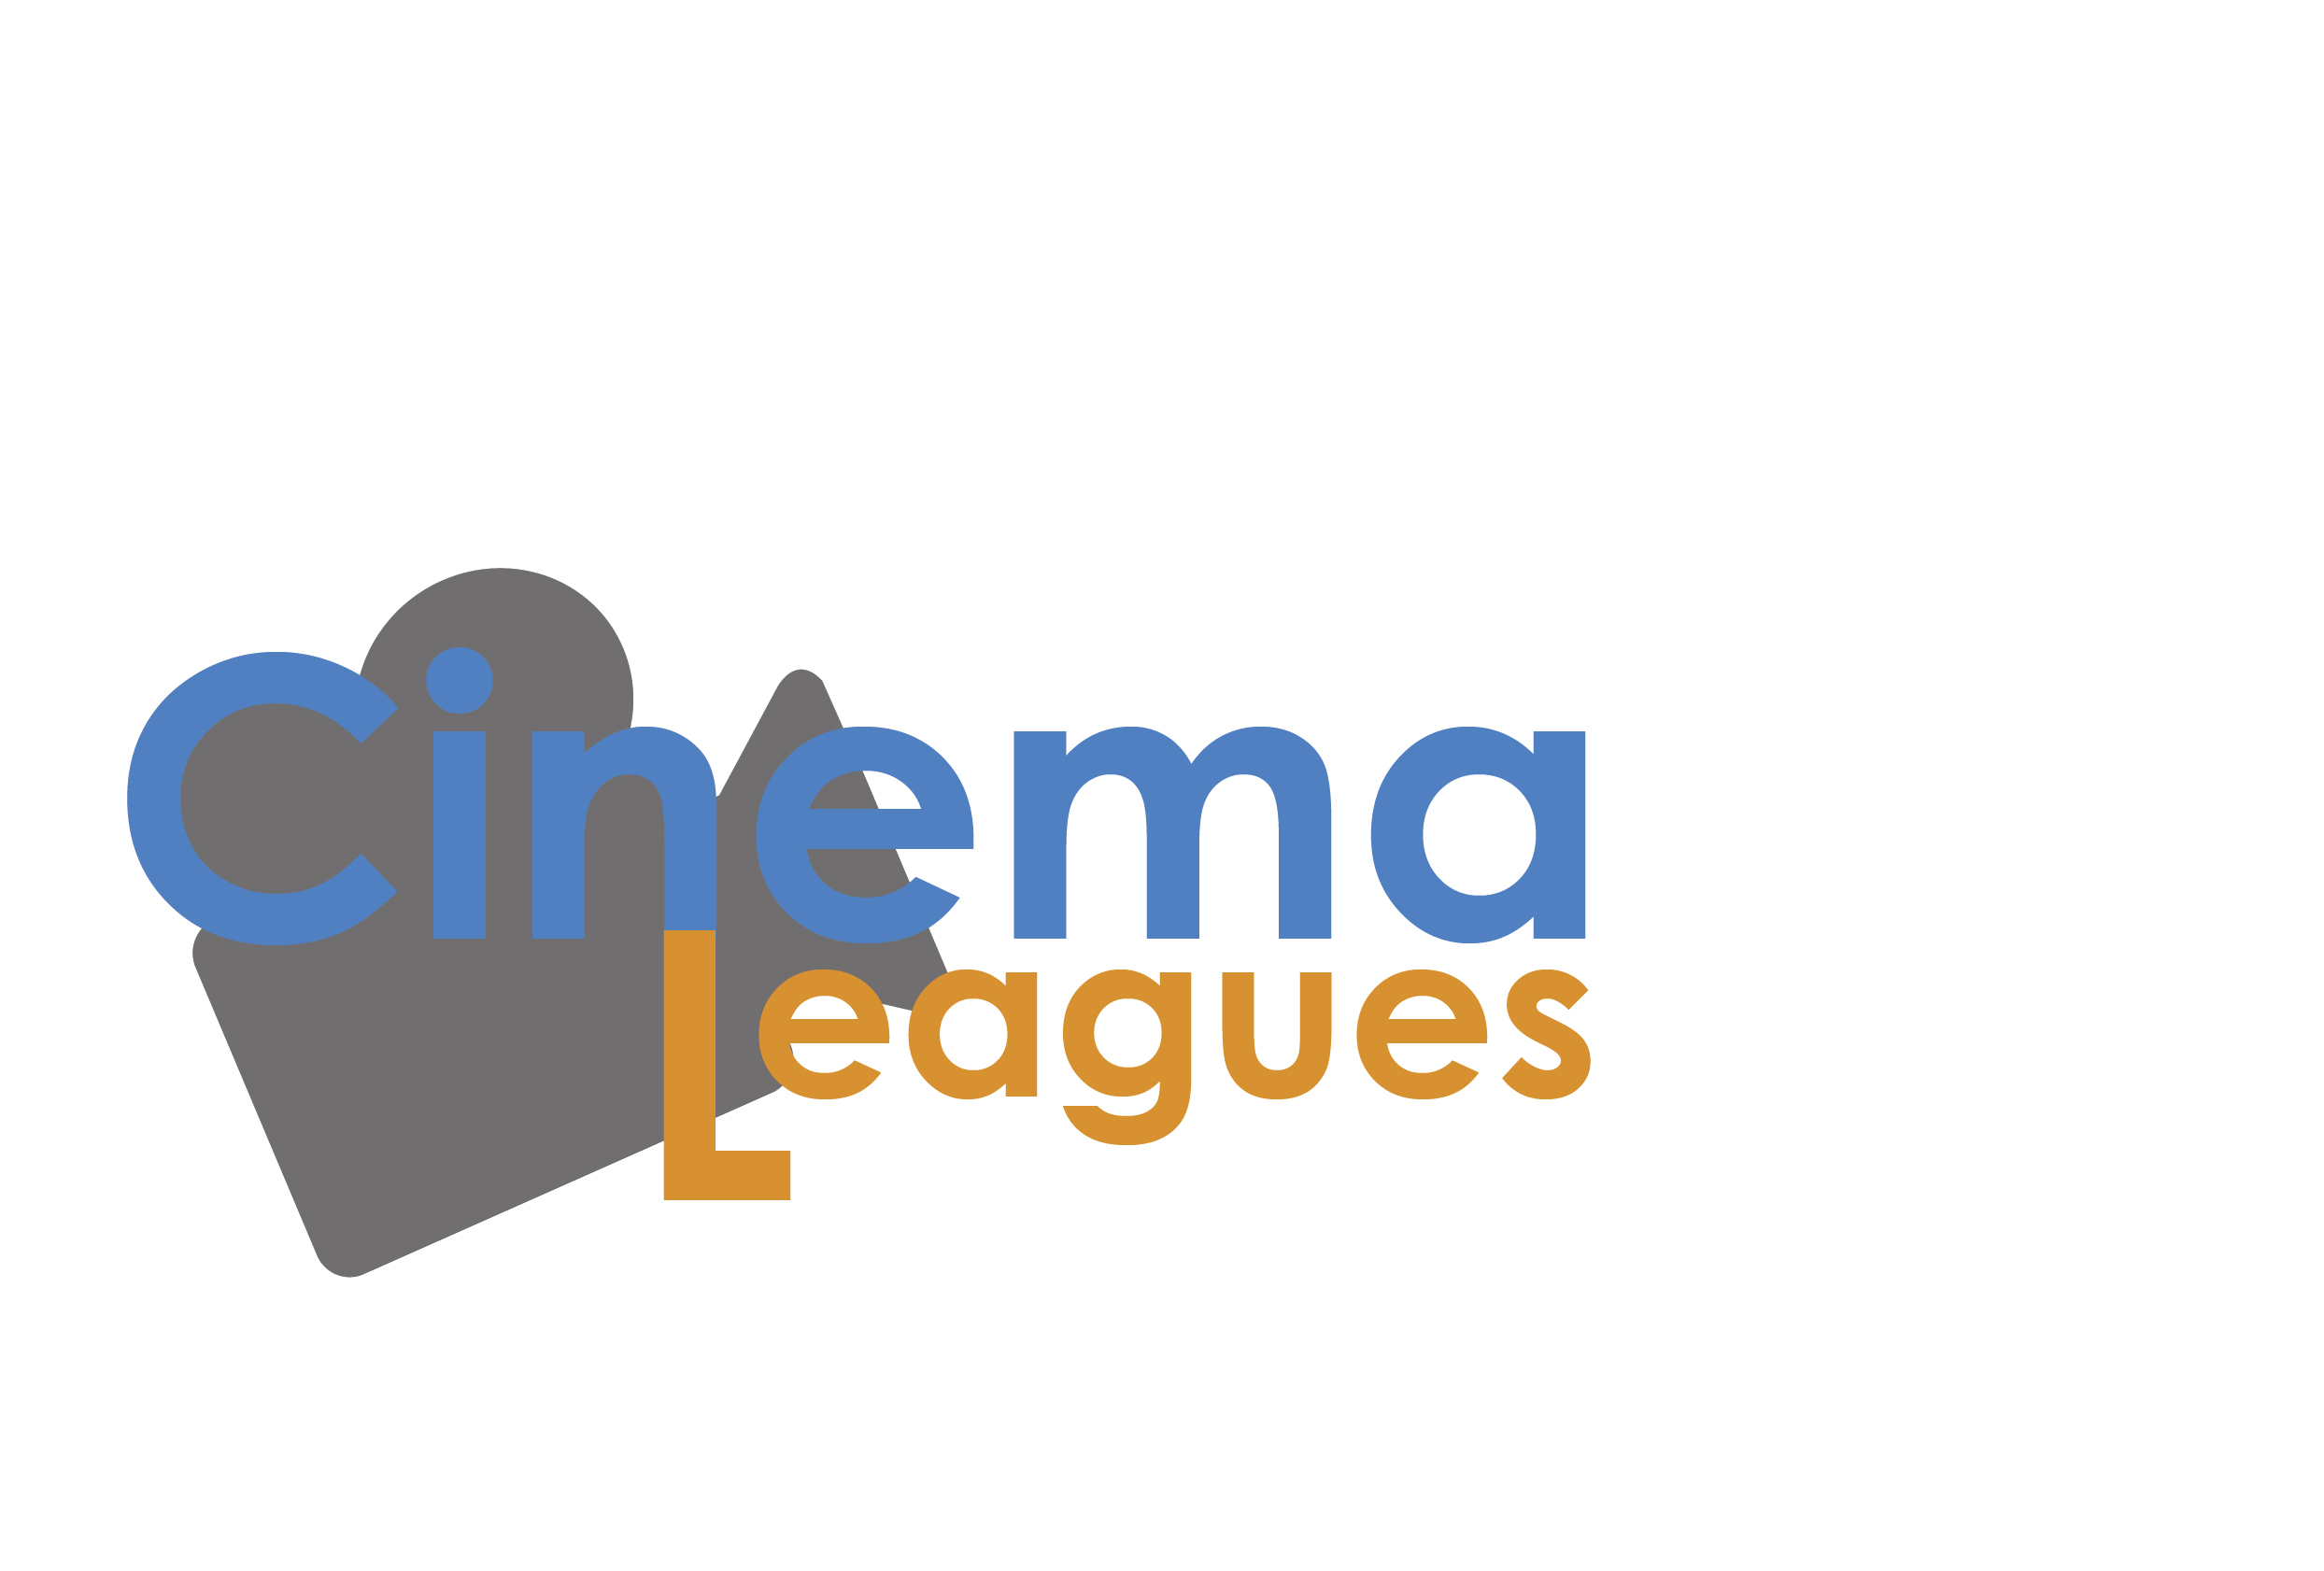 cinema_league9.jpg